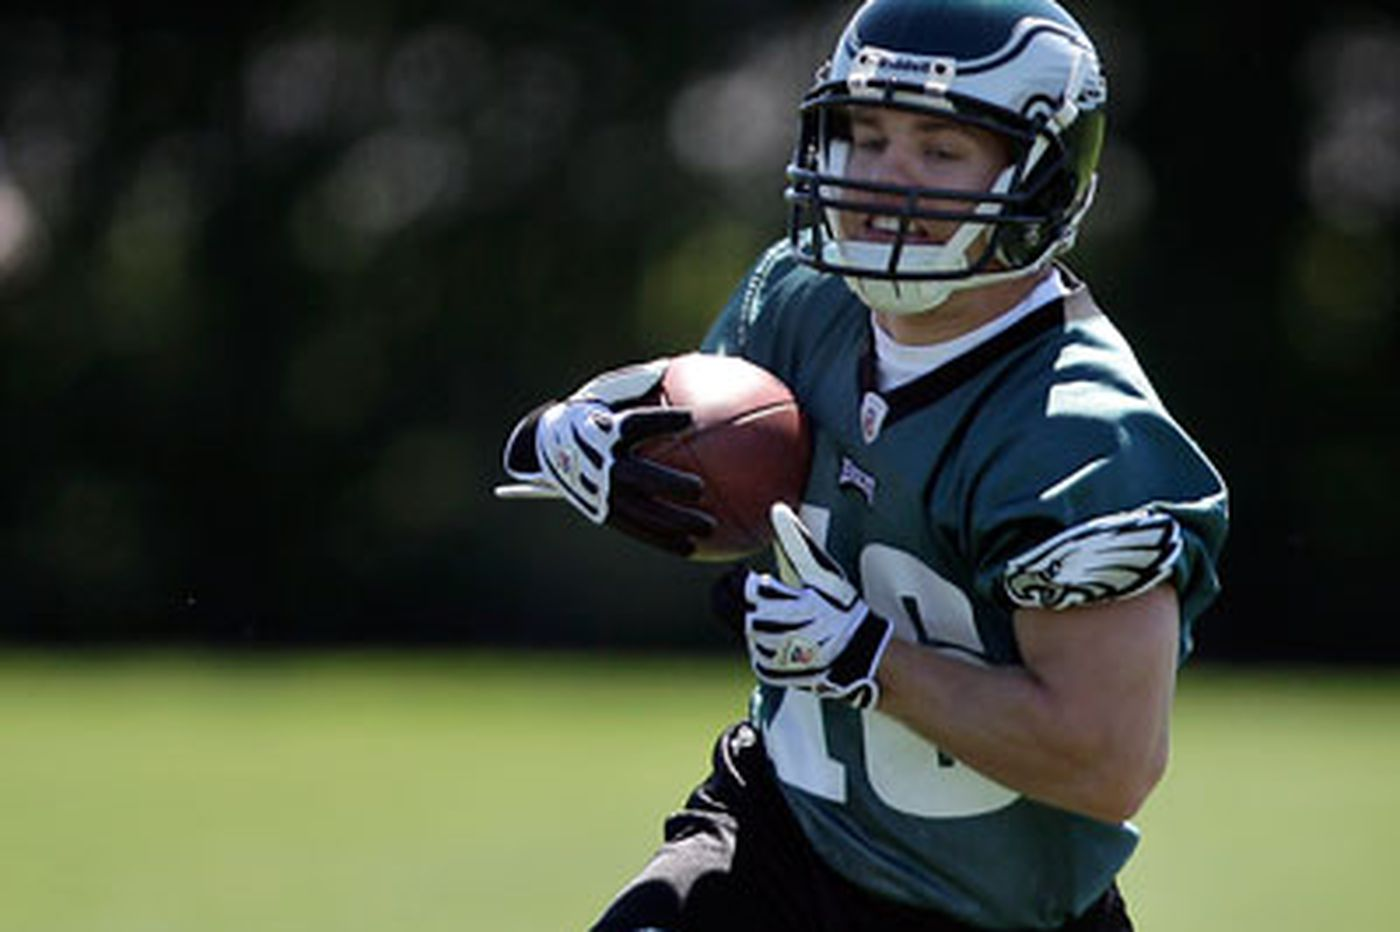 Hall is a high-ranking rookie for Eagles